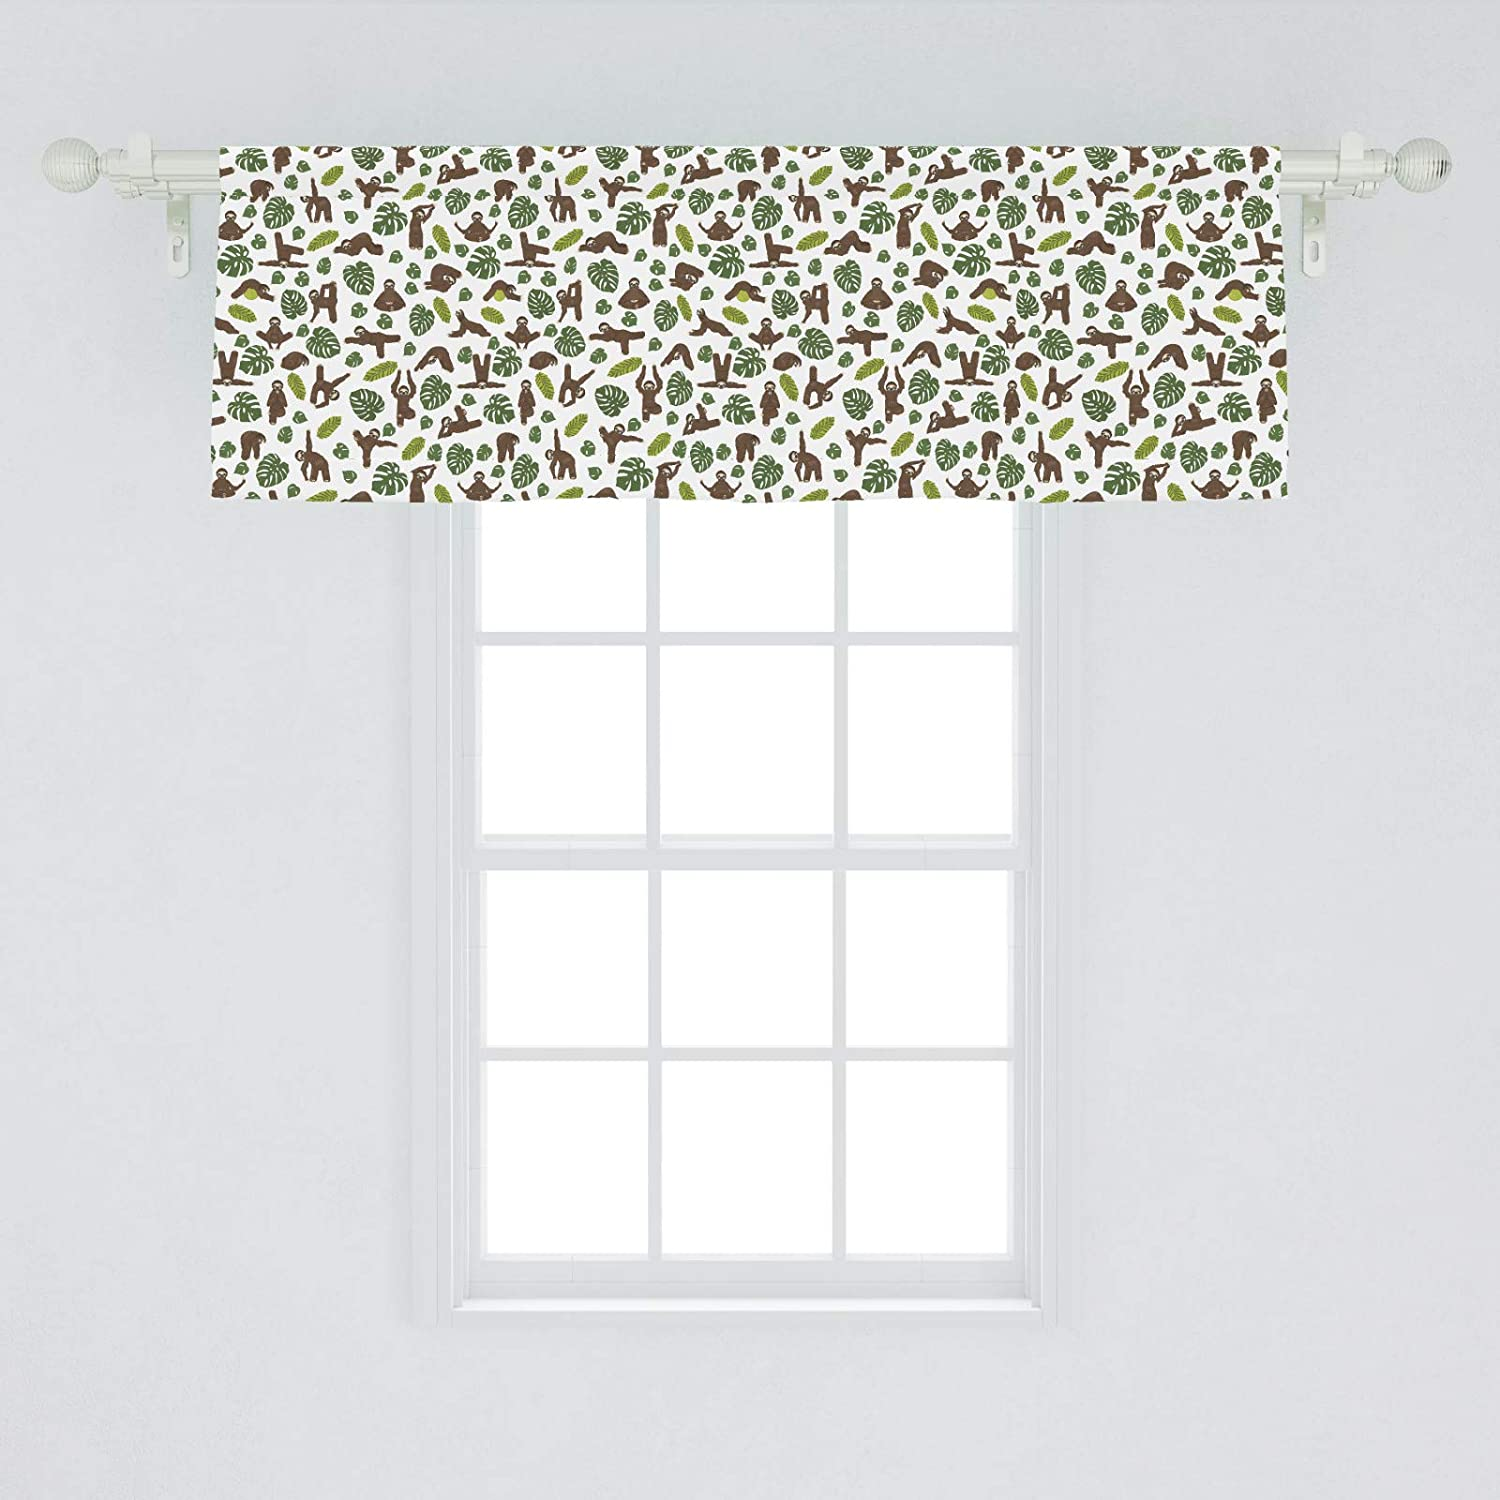 "Ambesonne Funny Sloth Window Valance, Yoga Gymnastics Lazy Animal Print on Plain Background, Curtain Valance for Kitchen Bedroom Decor with Rod Pocket, 54"" X 18"", Umber Olive"